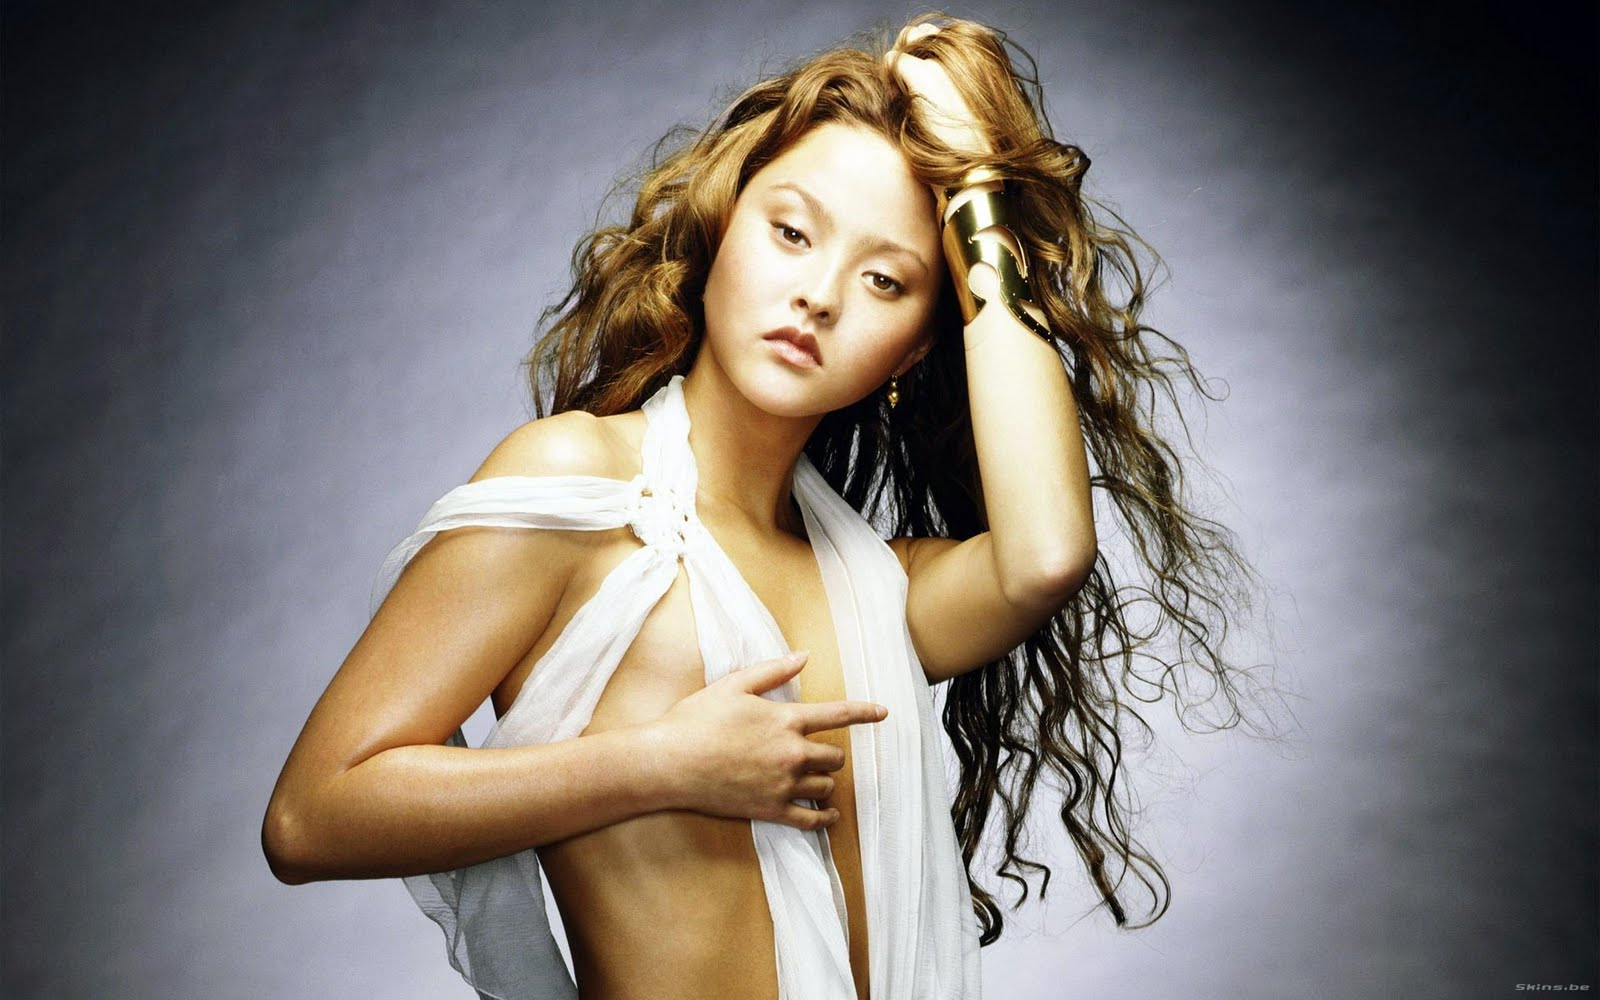 http://3.bp.blogspot.com/-wUpAINOSI10/Tbb9Gzjrn9I/AAAAAAAAOCY/vVFiY-FMuuU/s1600/american-model-actress-Devon-Aoki-wallpaper%2B%25282%2529.jpg